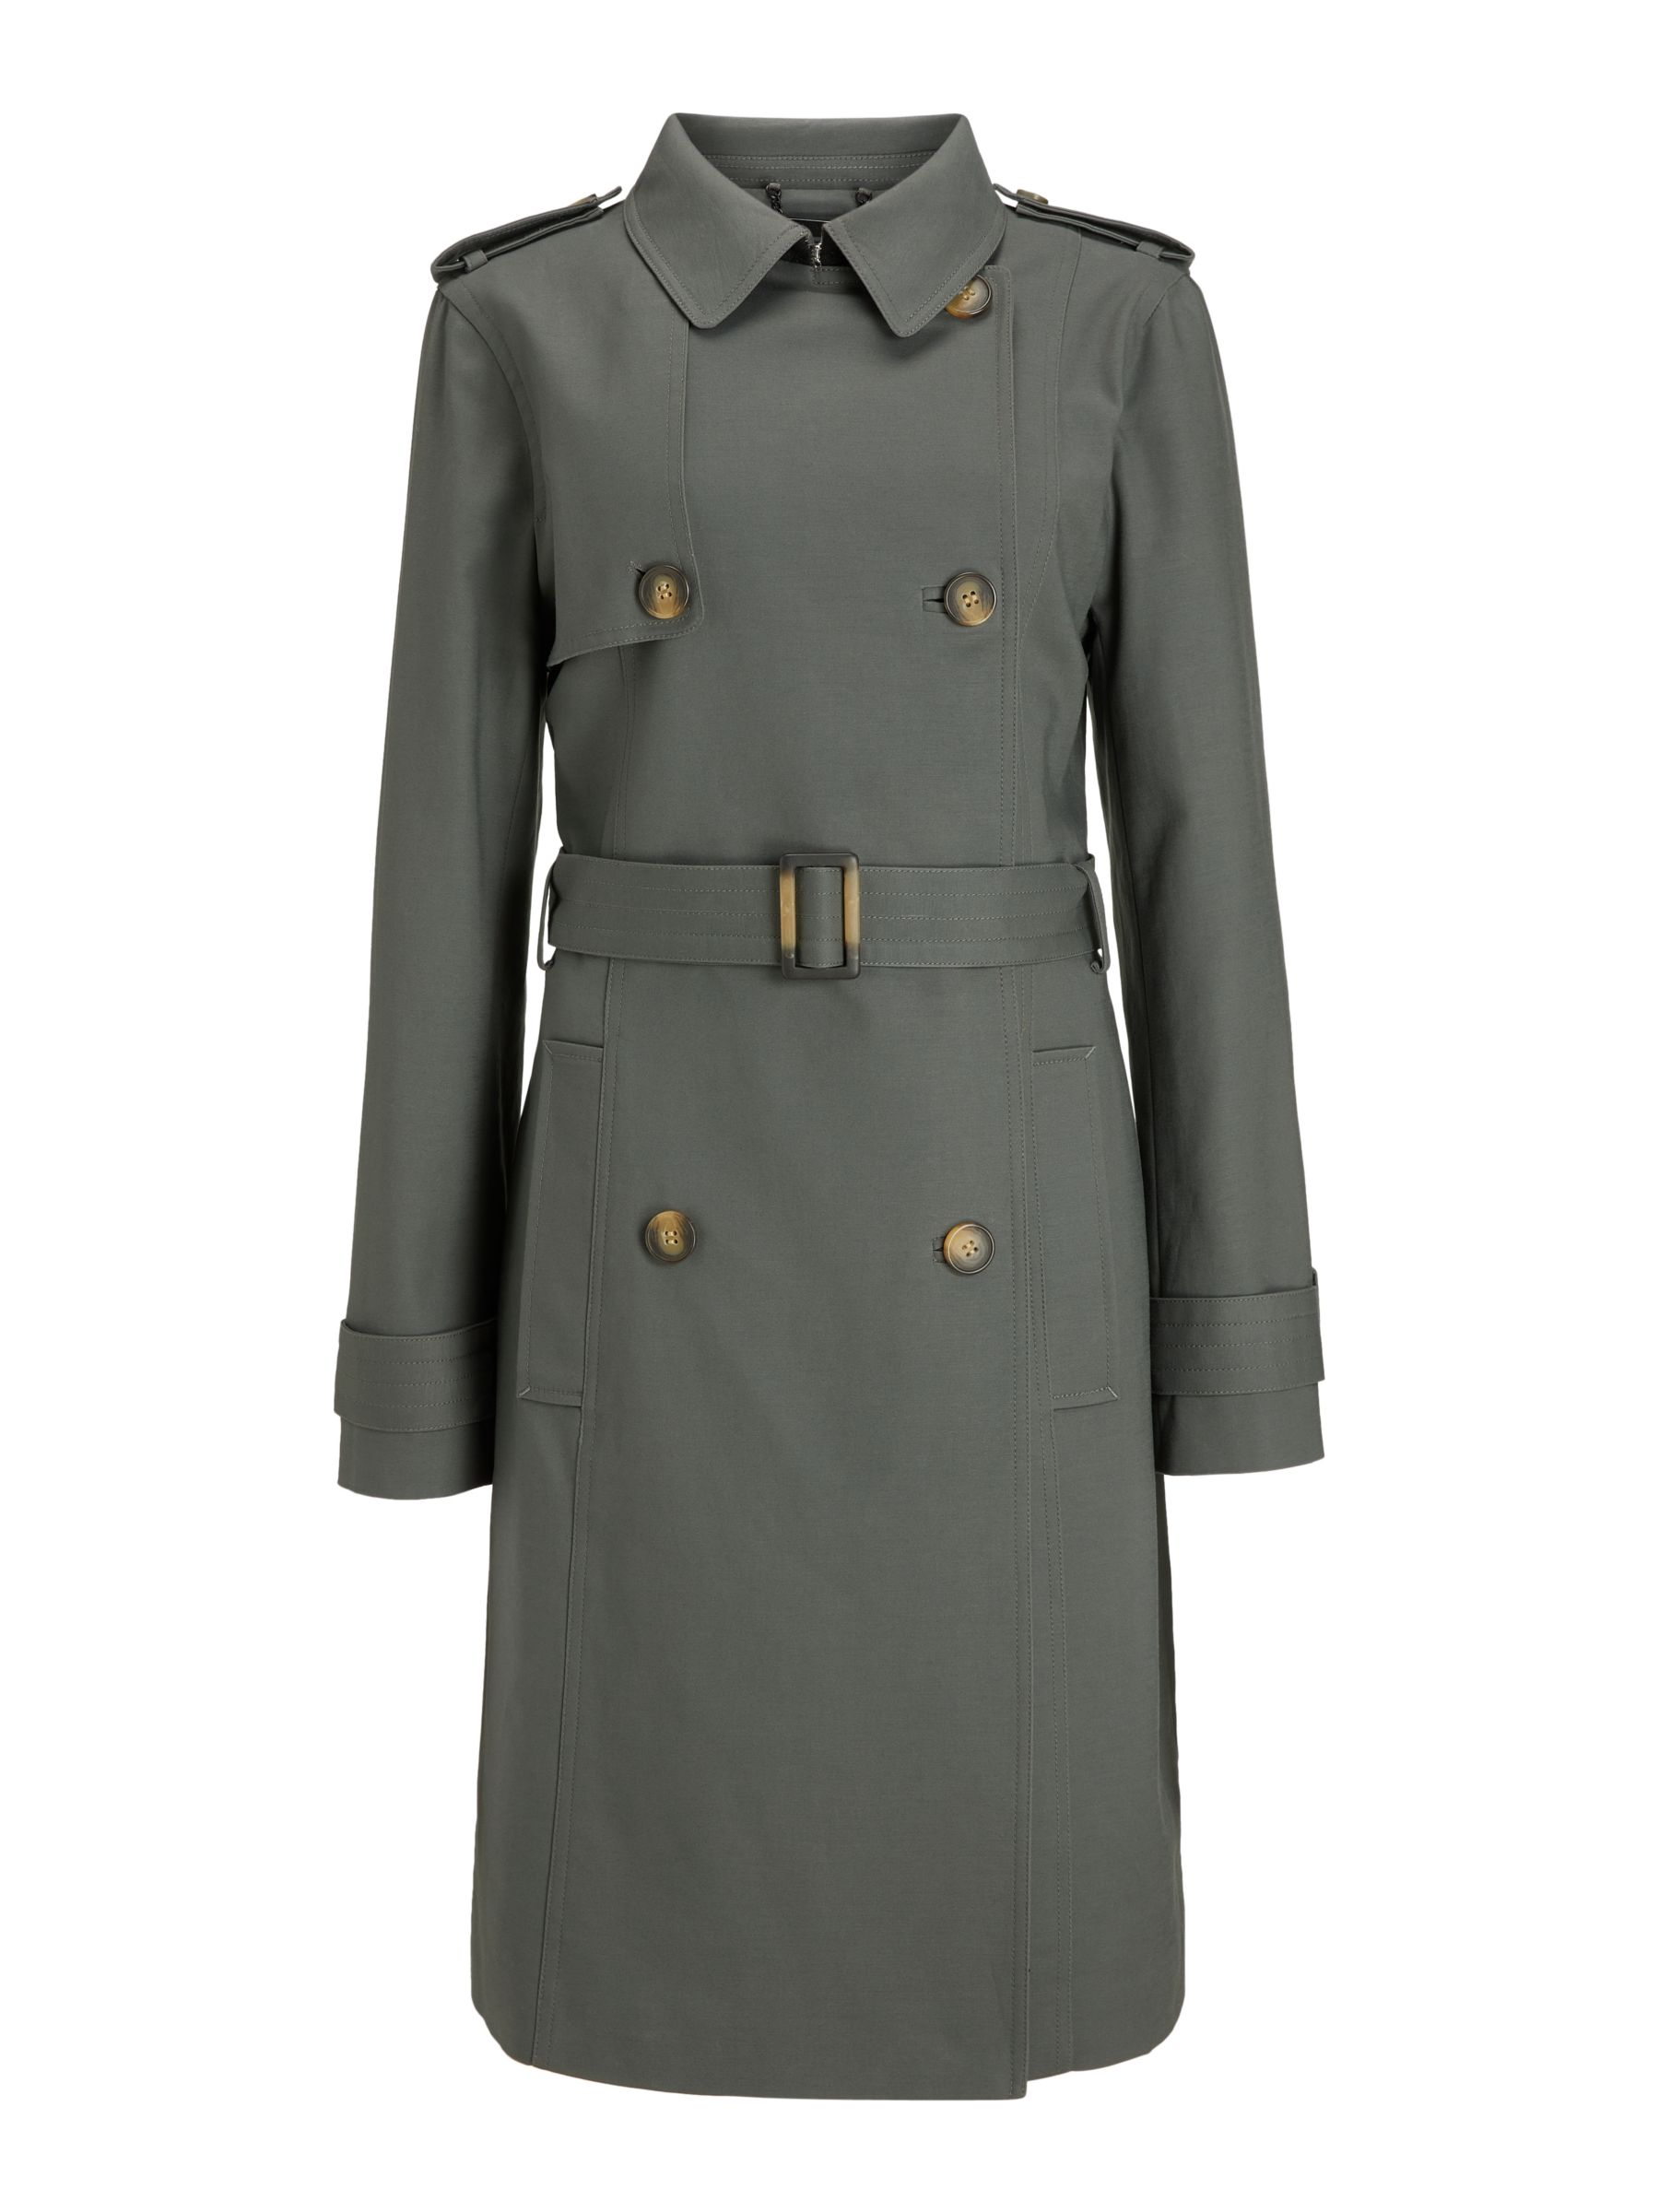 Buy John Lewis & Partners Double Breasted Classic Trench Coat, Khaki, 8 Online at johnlewis.com